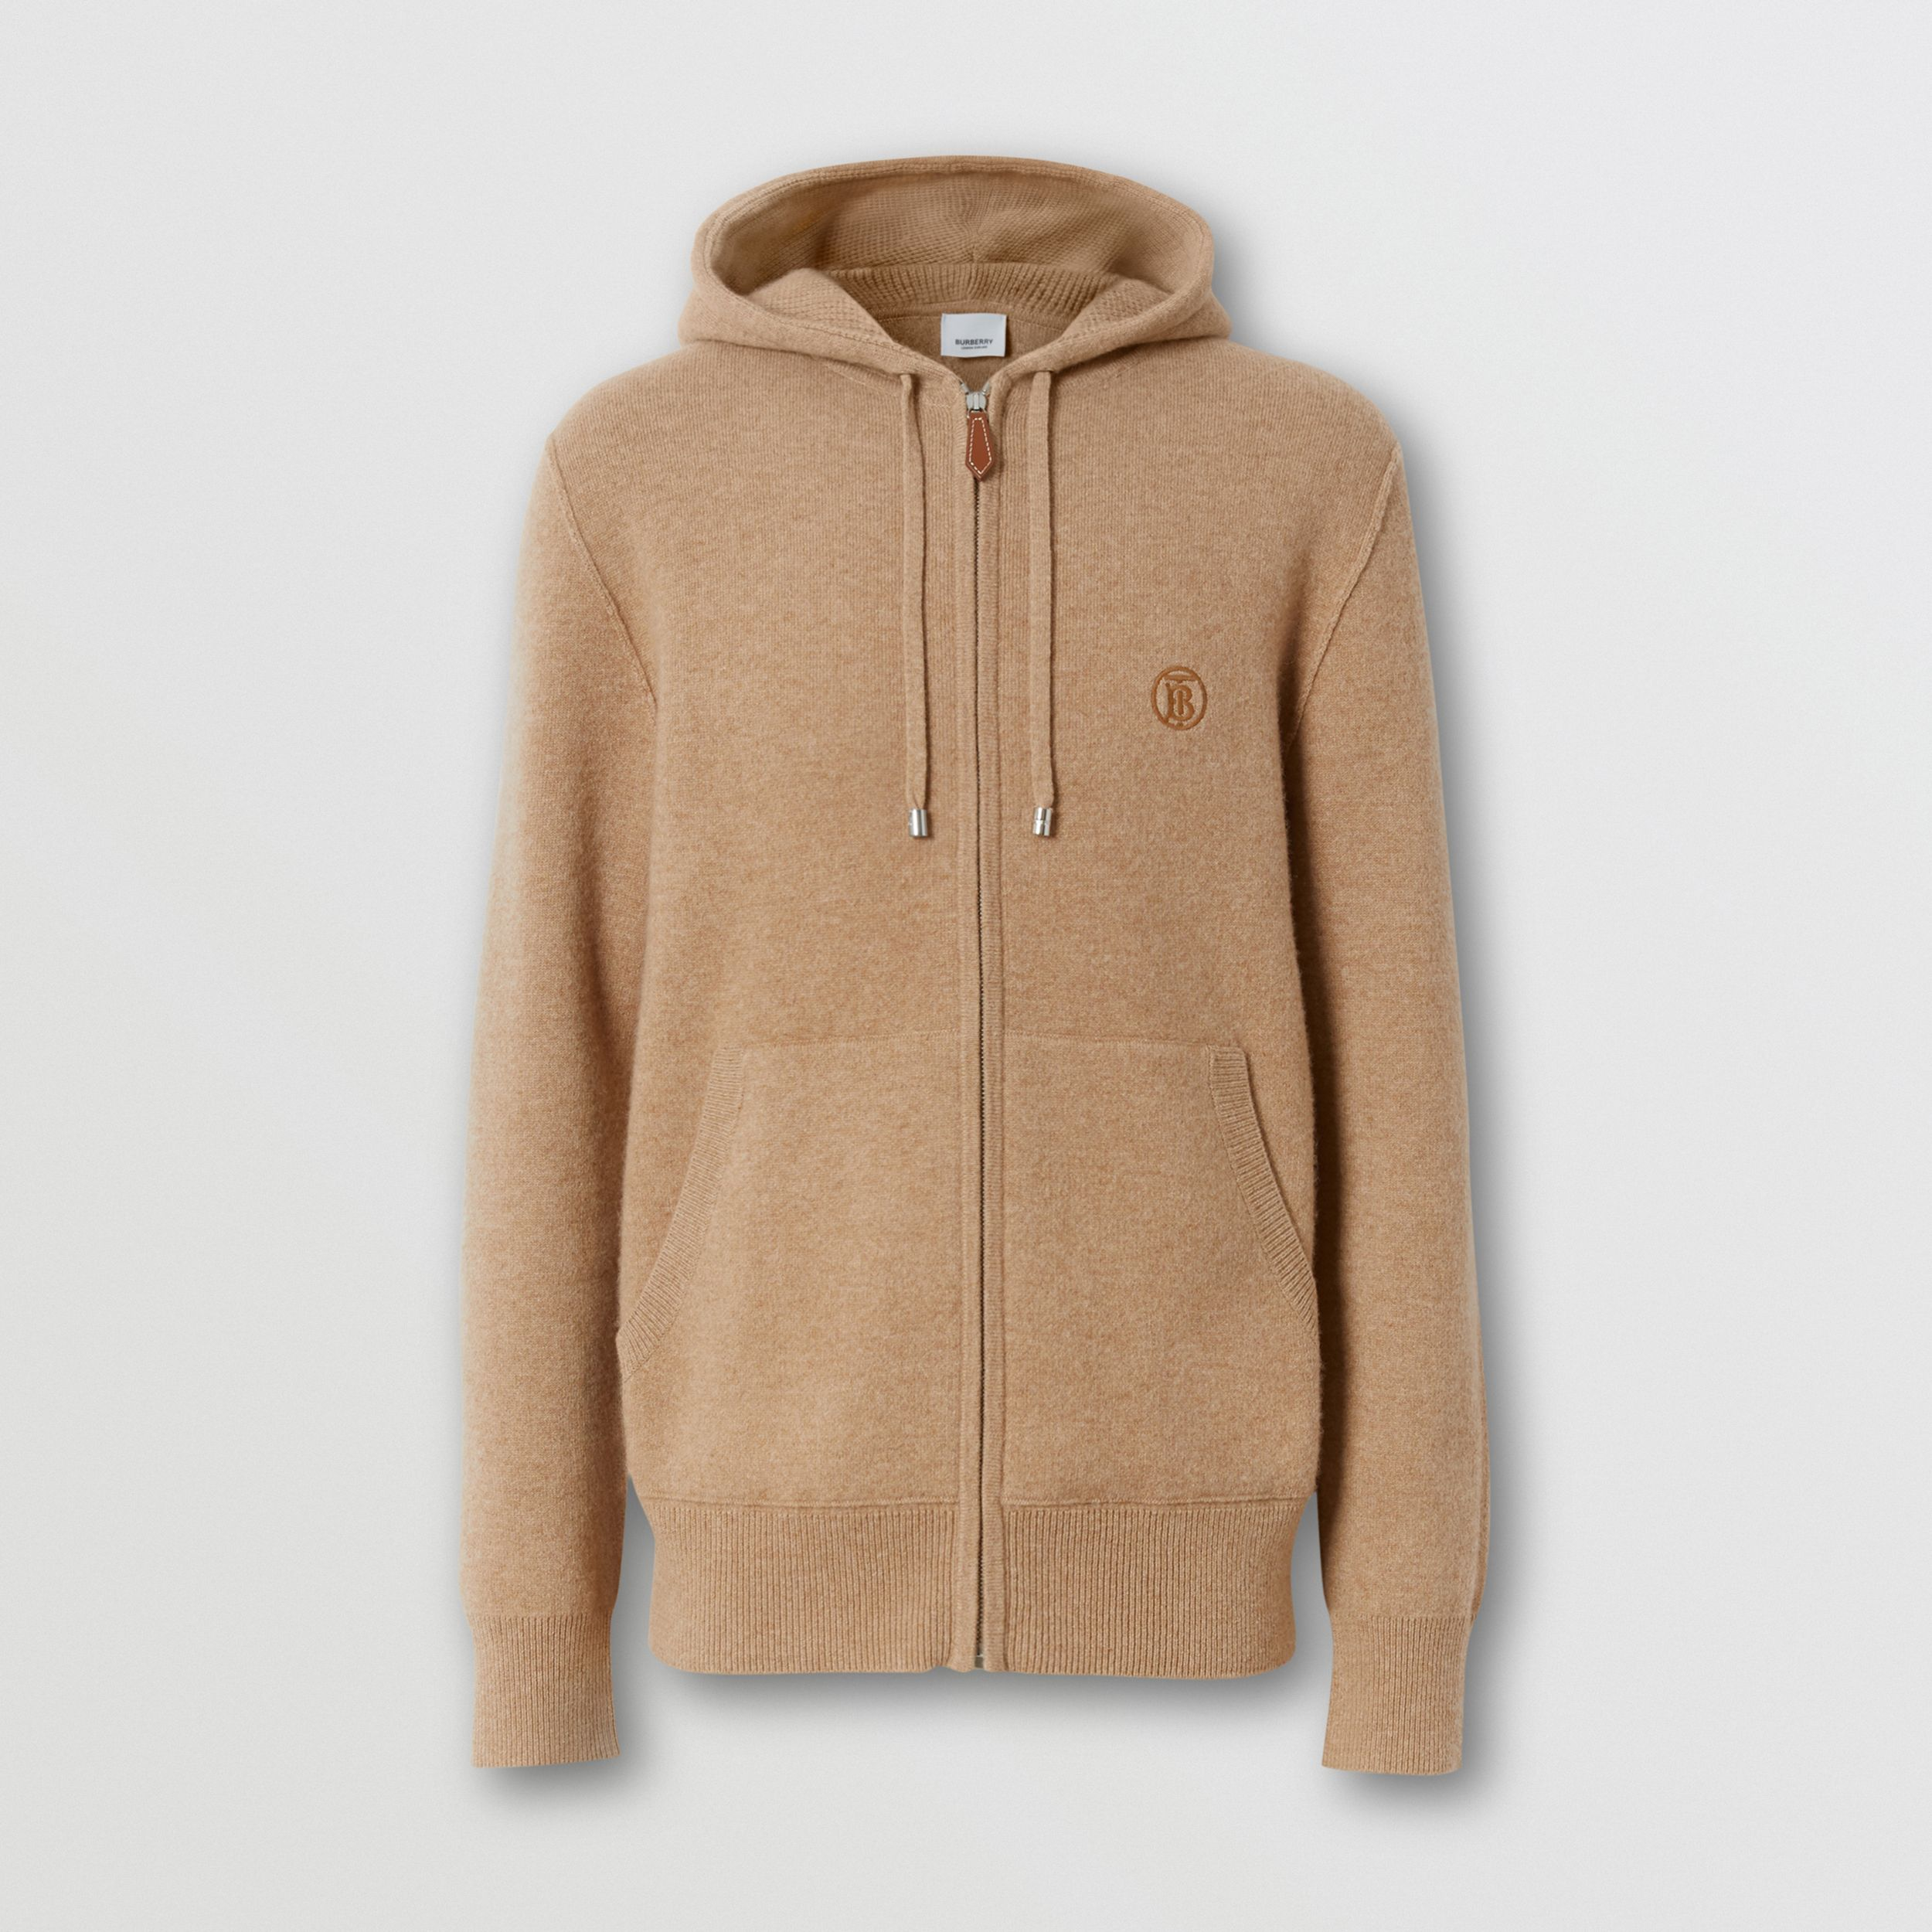 Monogram Motif Cashmere Blend Hooded Top in Pale Coffee - Men | Burberry Australia - 4